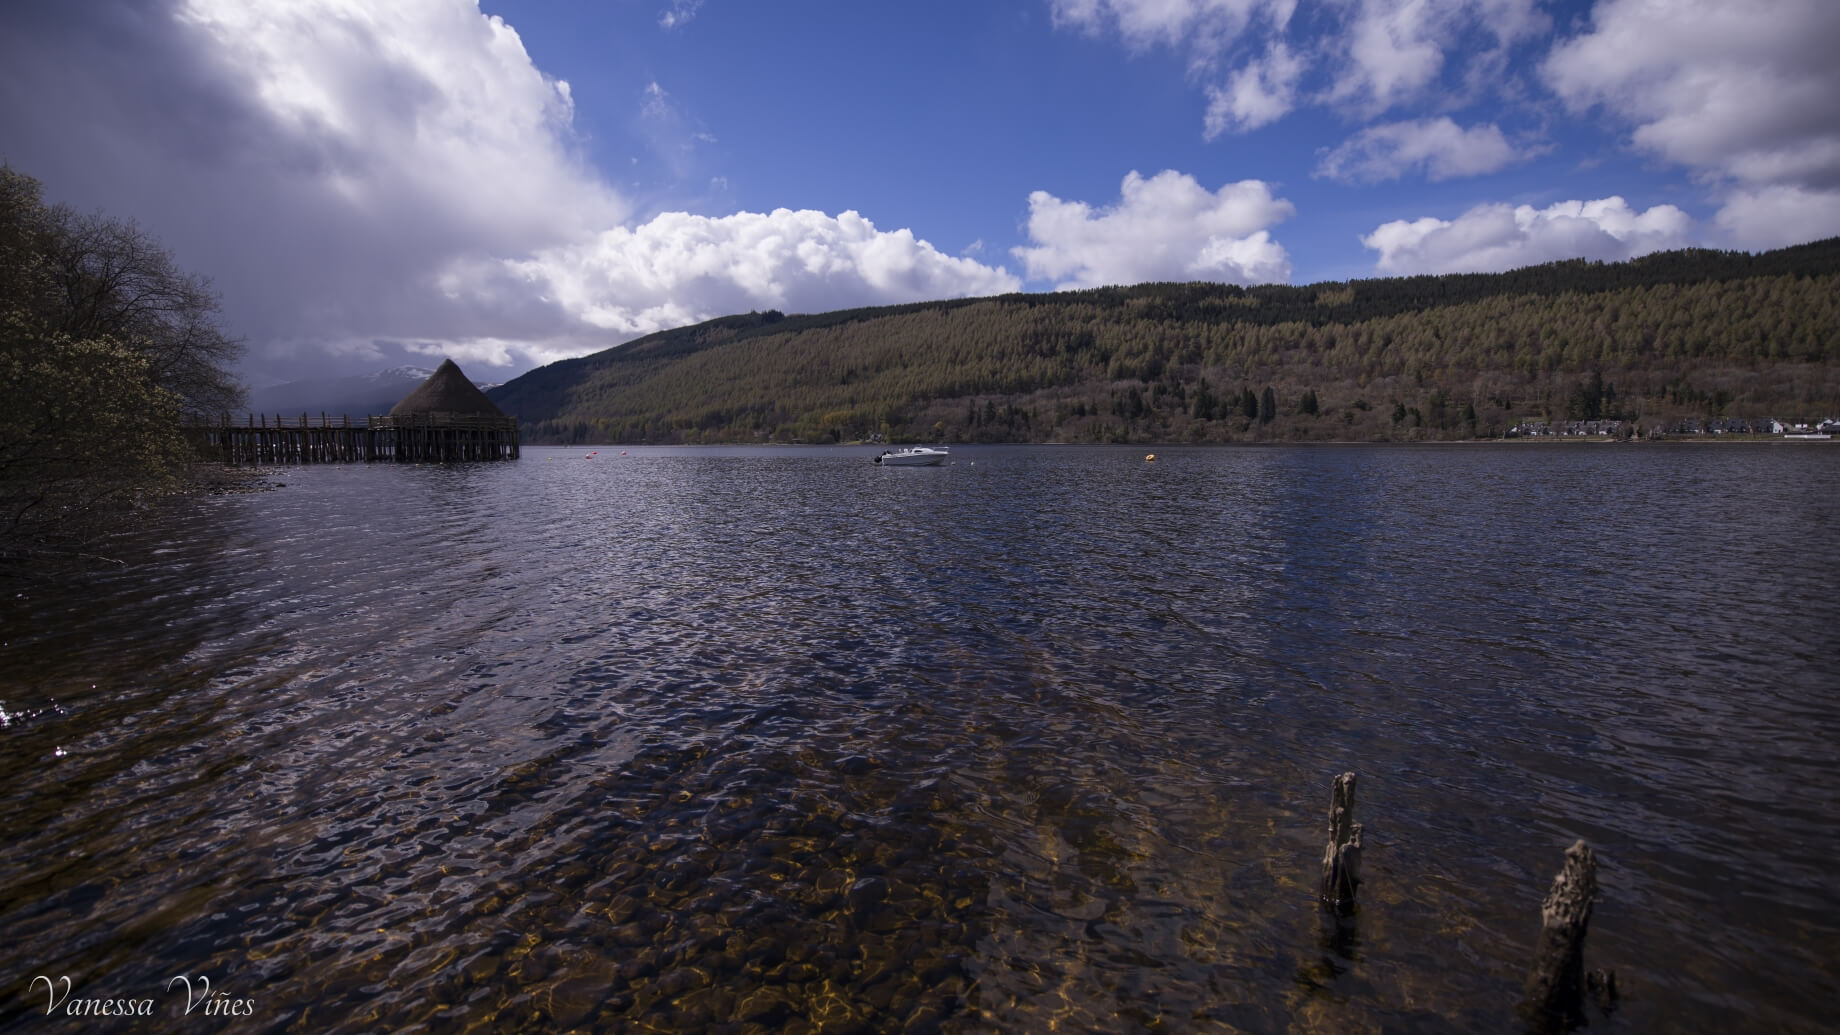 Another shot of the crannog